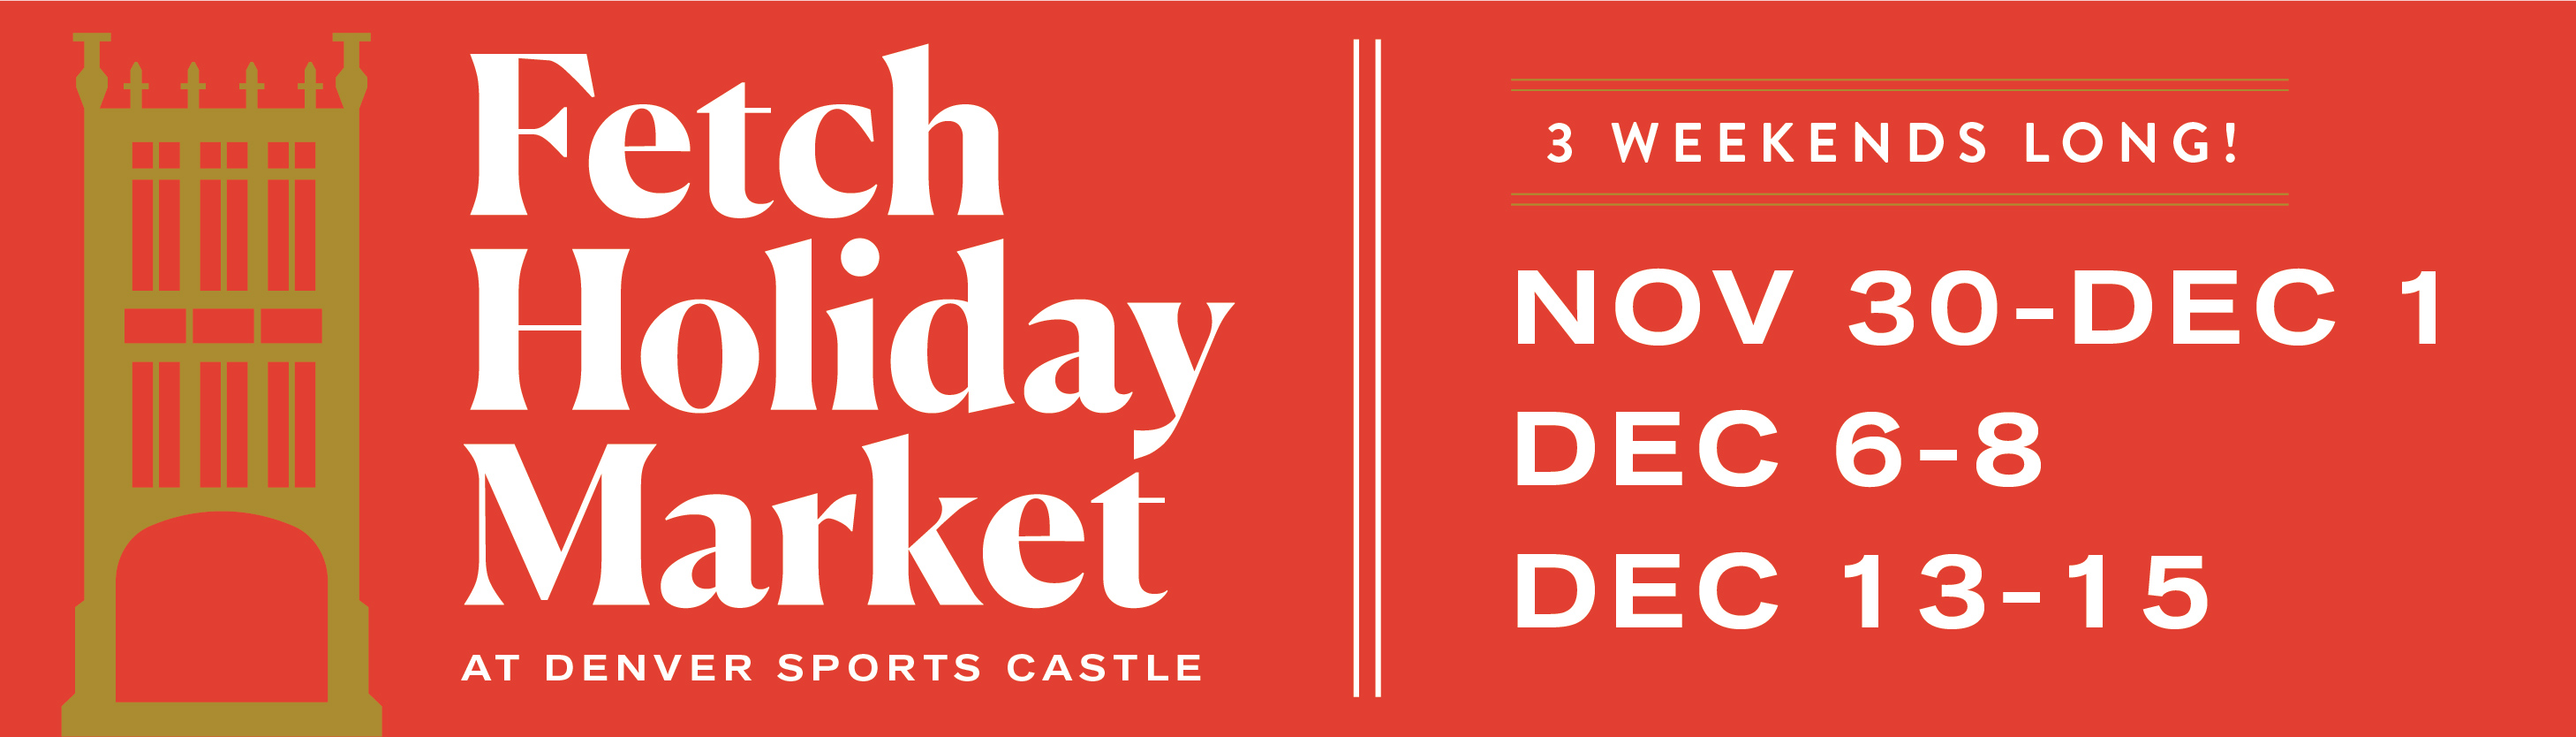 Fetch Holiday Market Saturday cover photo 1